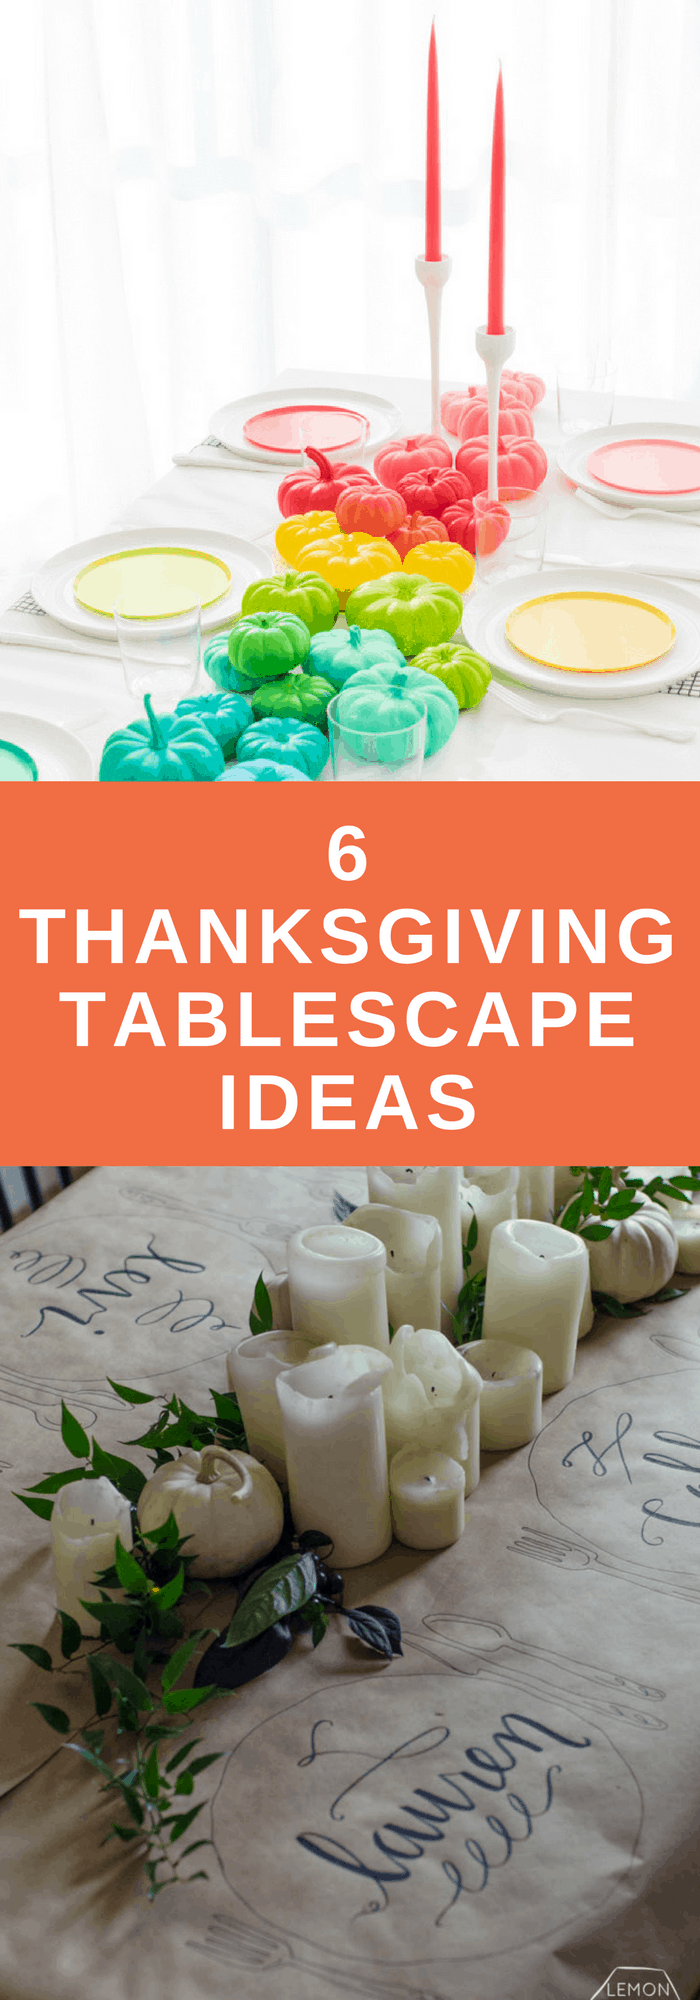 Holidays-Thanksgiving Tablescape Ideas-The Organized Mom